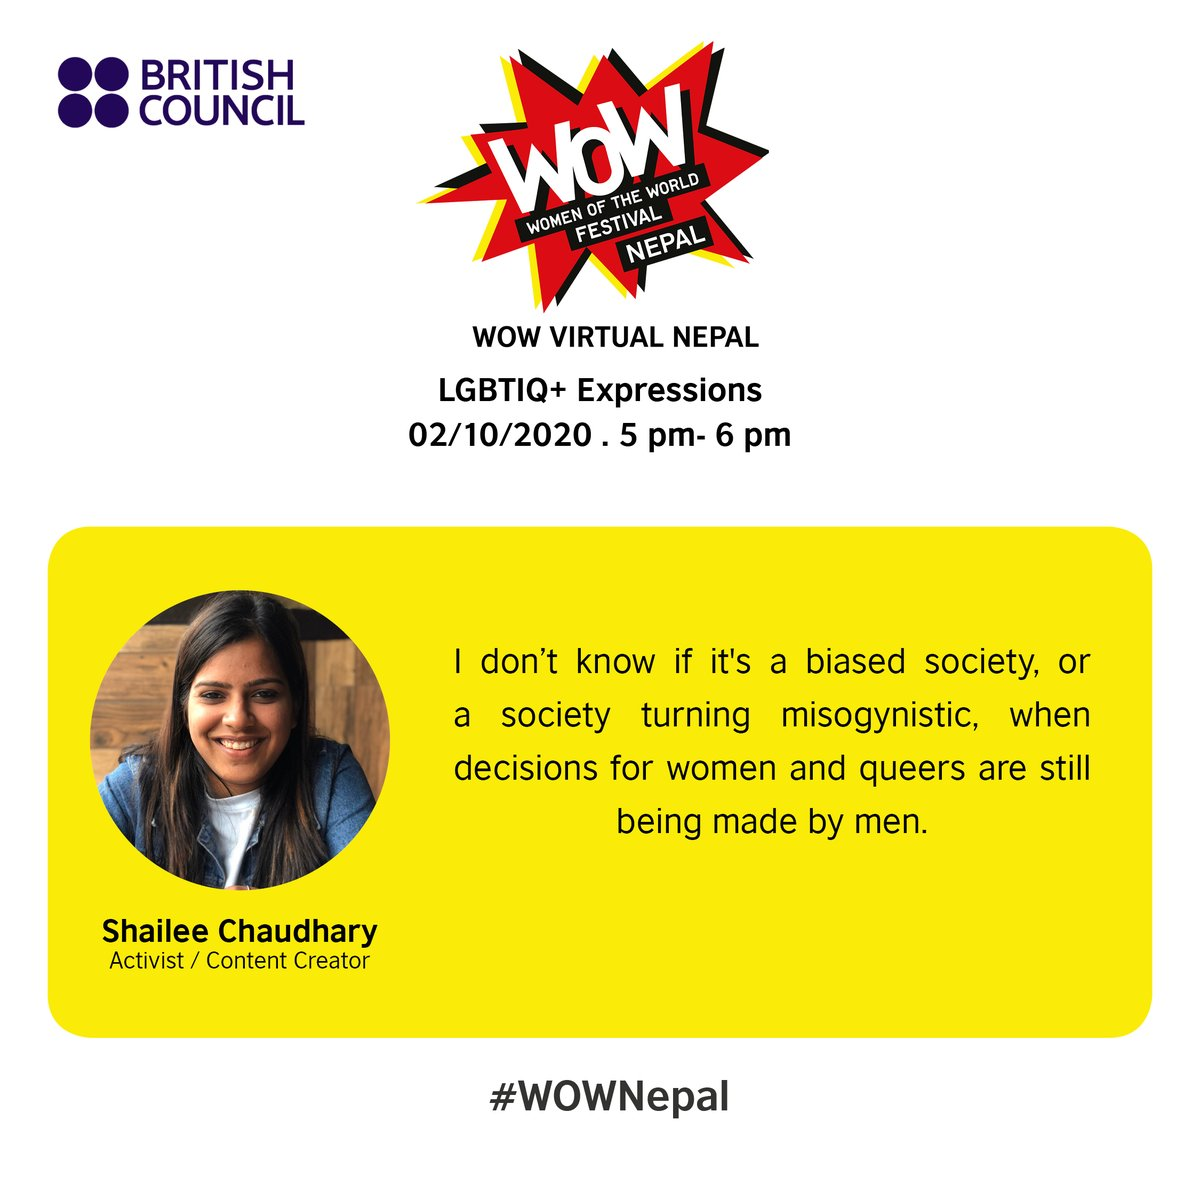 Shailee Chaudhary is an activist and a content creator. On 2 October, she will be talking about her life as a queer person in #Madhesh. Join her LIVE on our Facebook! https://t.co/tP5Cx1EQ7j #WOWNepal #LGBTIQ https://t.co/VzPLj5xnOt